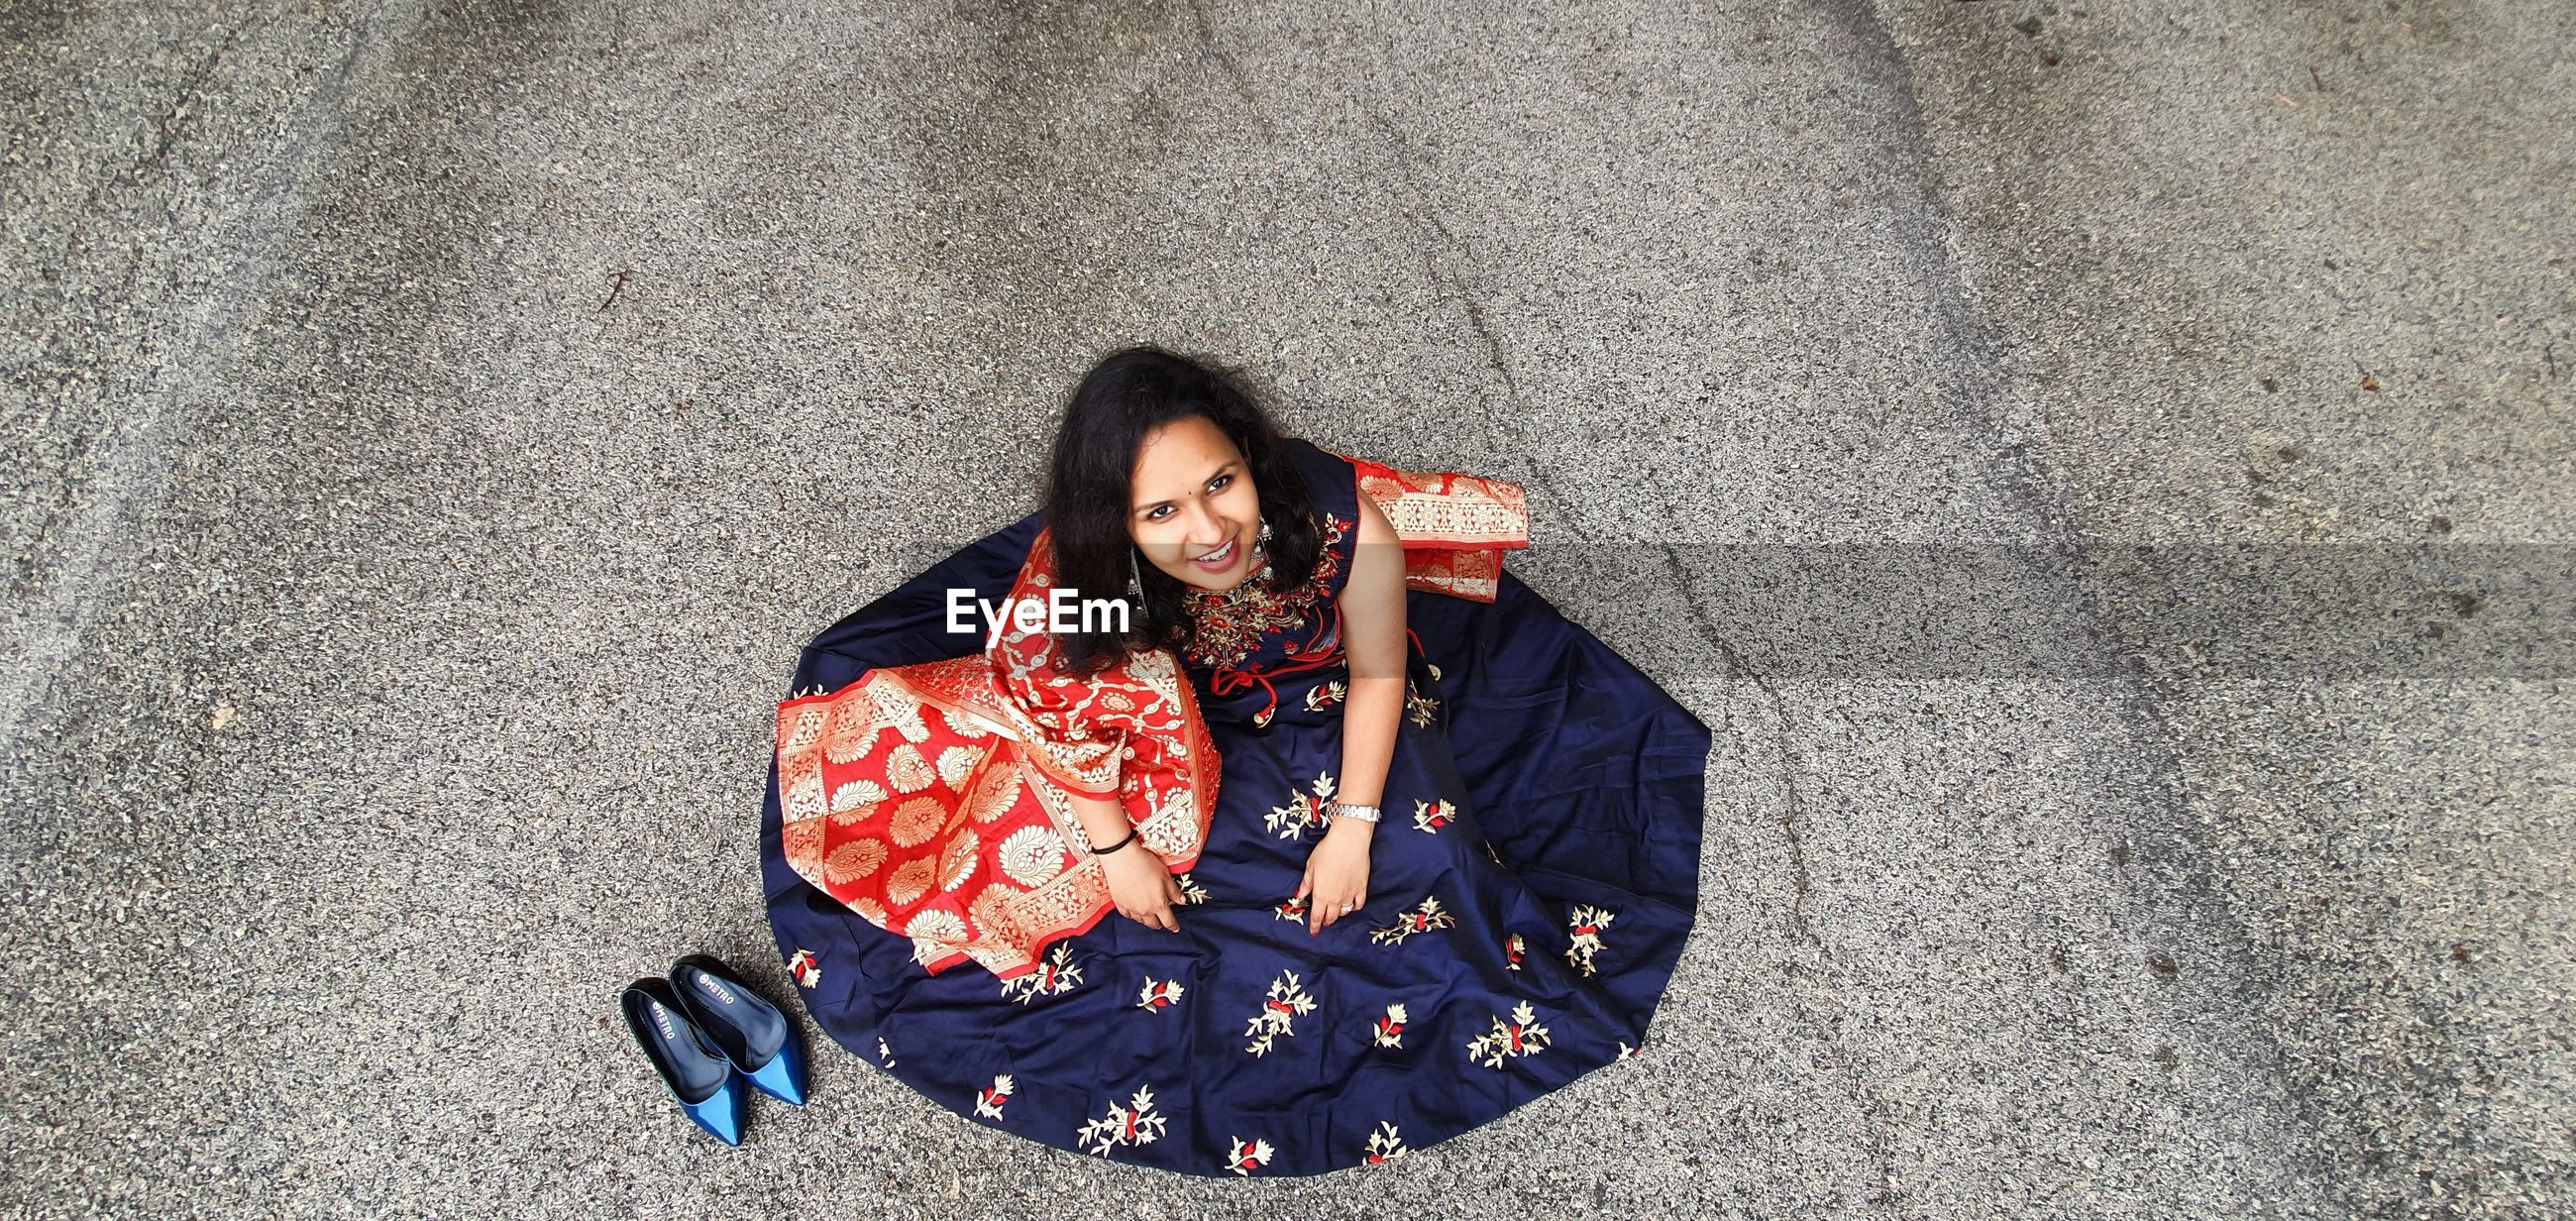 High angle view of woman sitting